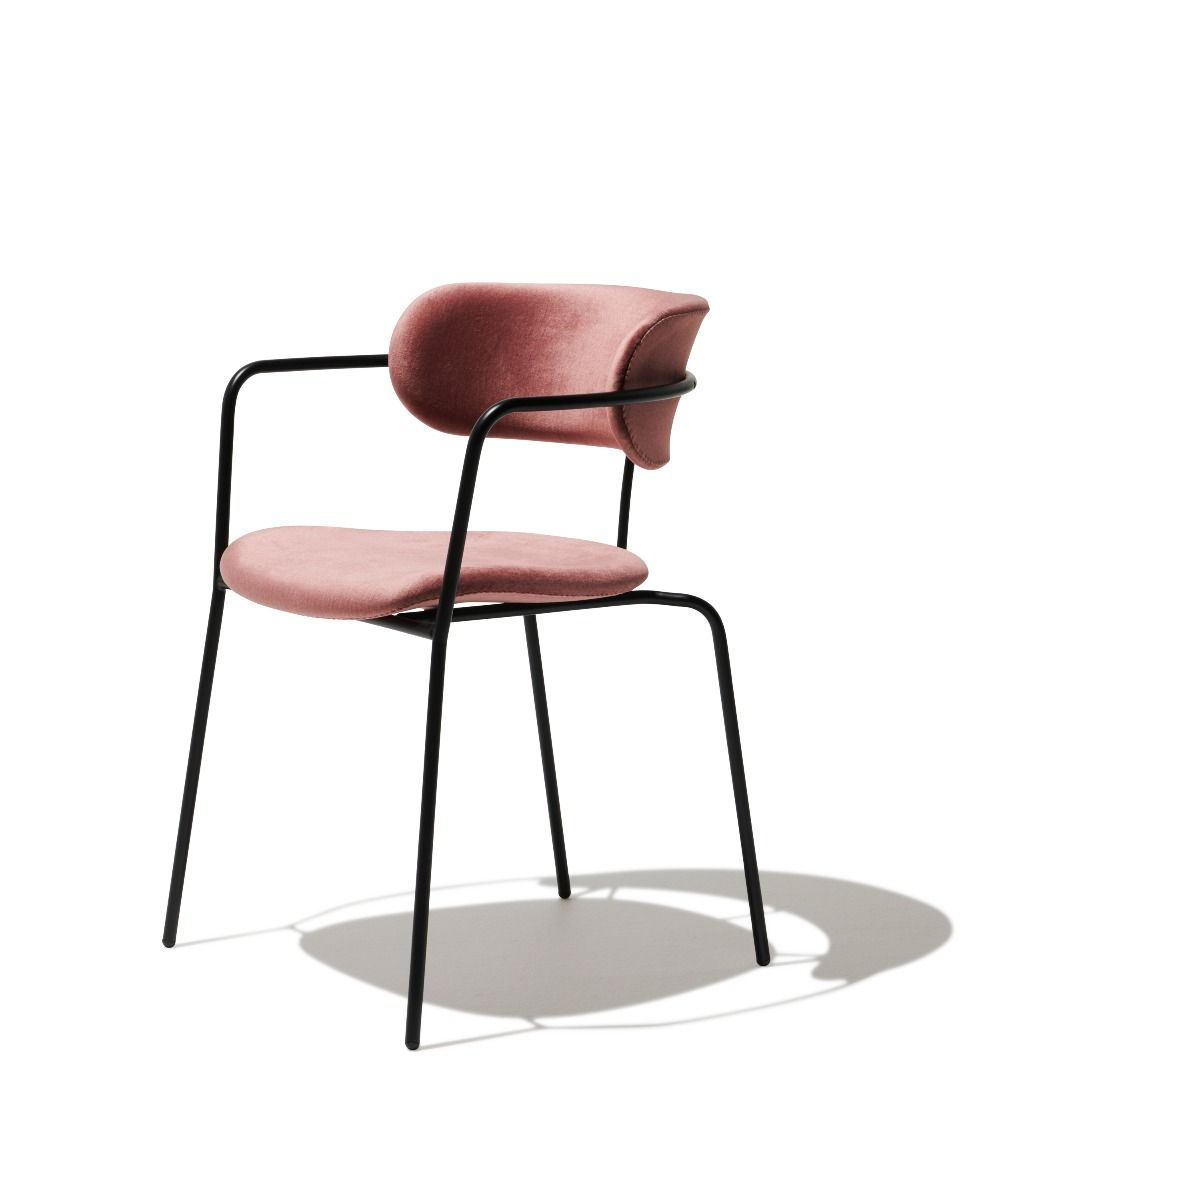 Spout Chair In 2020 Chair Furniture Hardware Interior